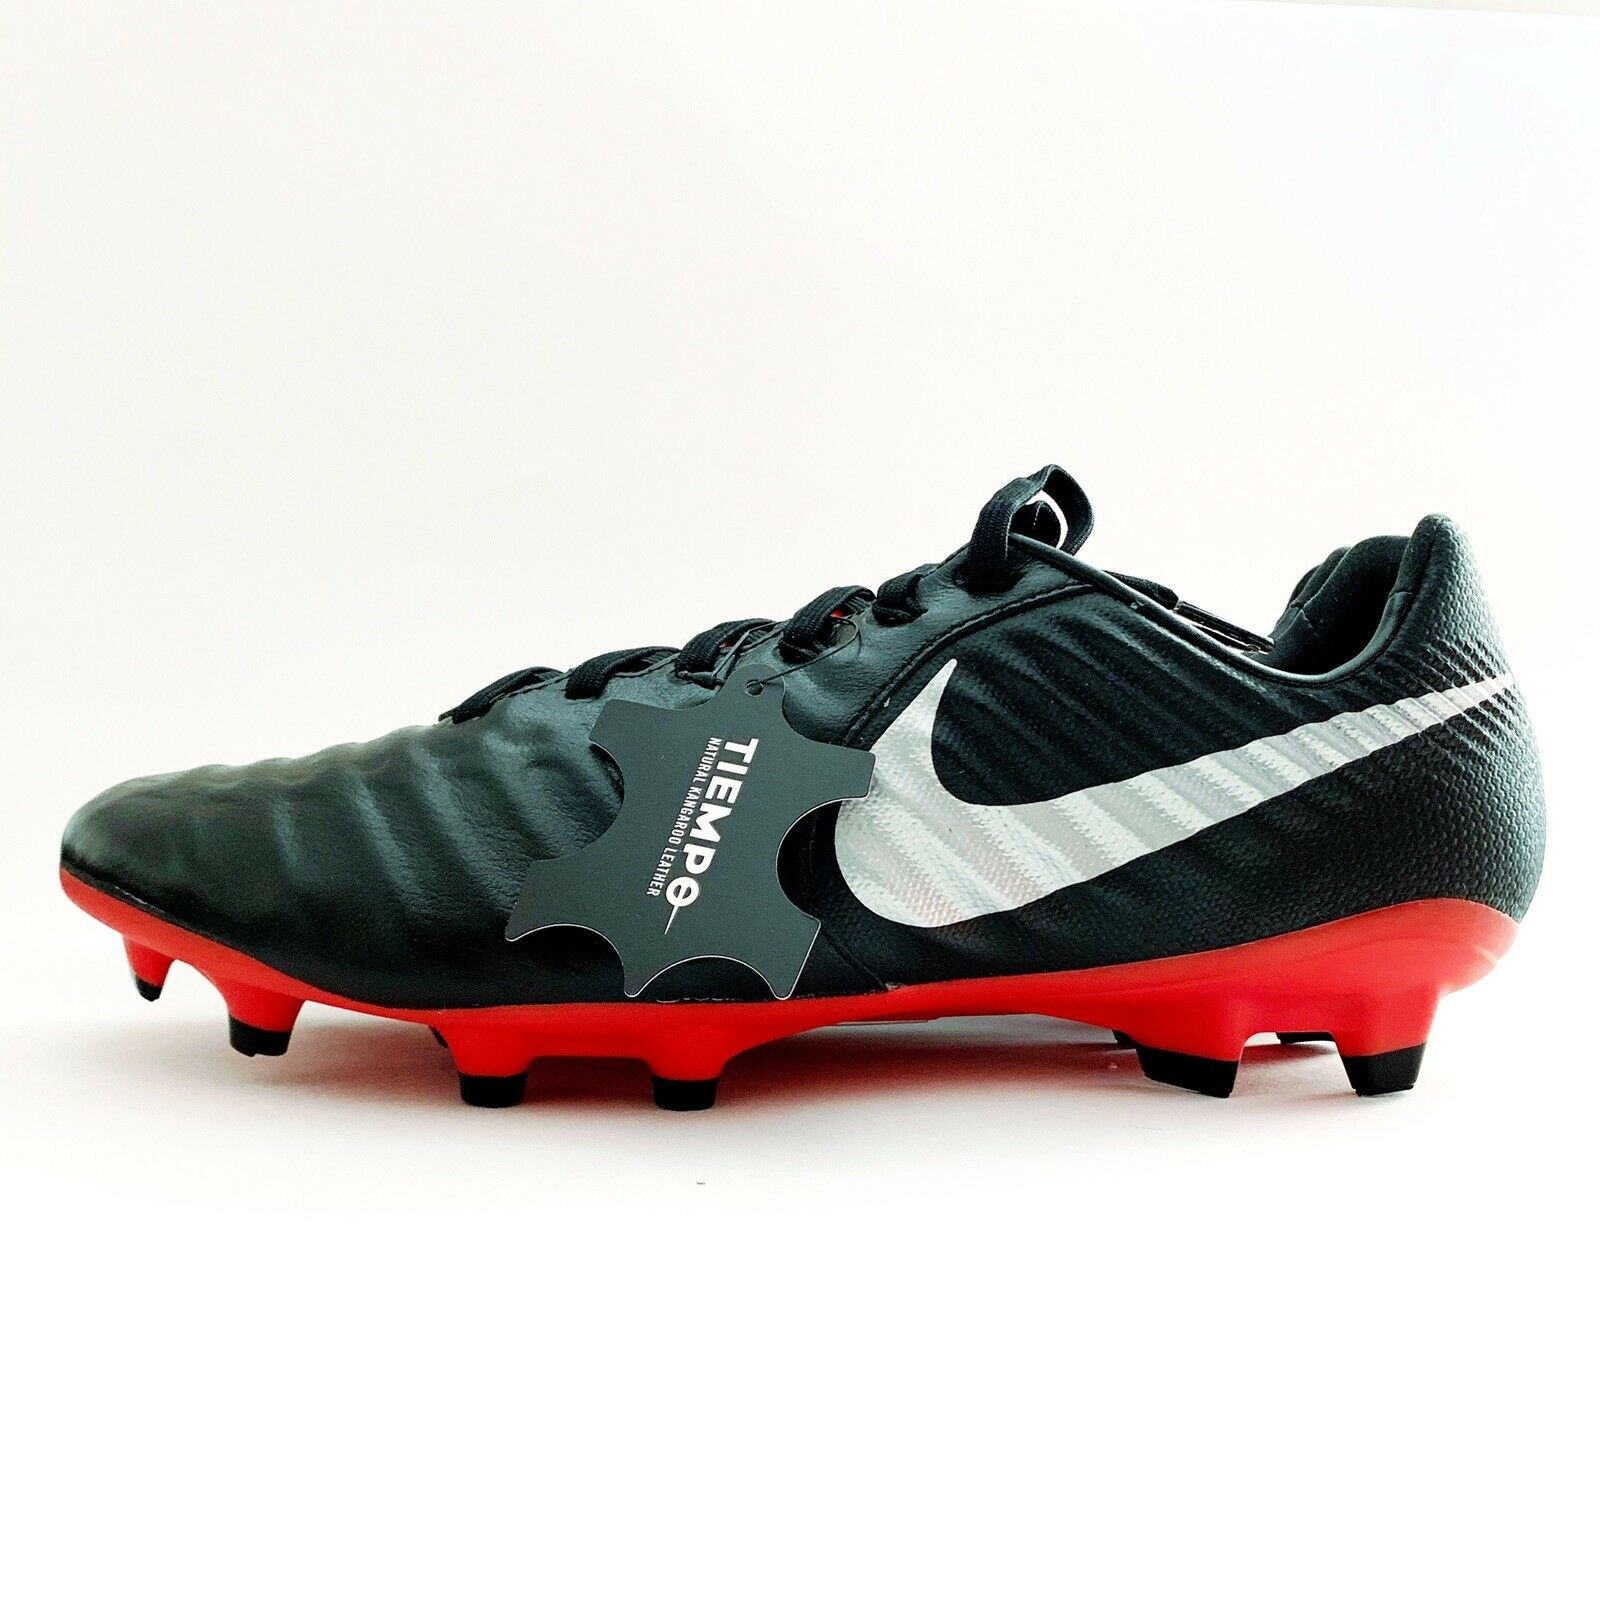 b1eb85700 New Nike Legend VII VII VII 7 Pro FG Soccer Cleats Tiempo Mens 9.5 Red Black